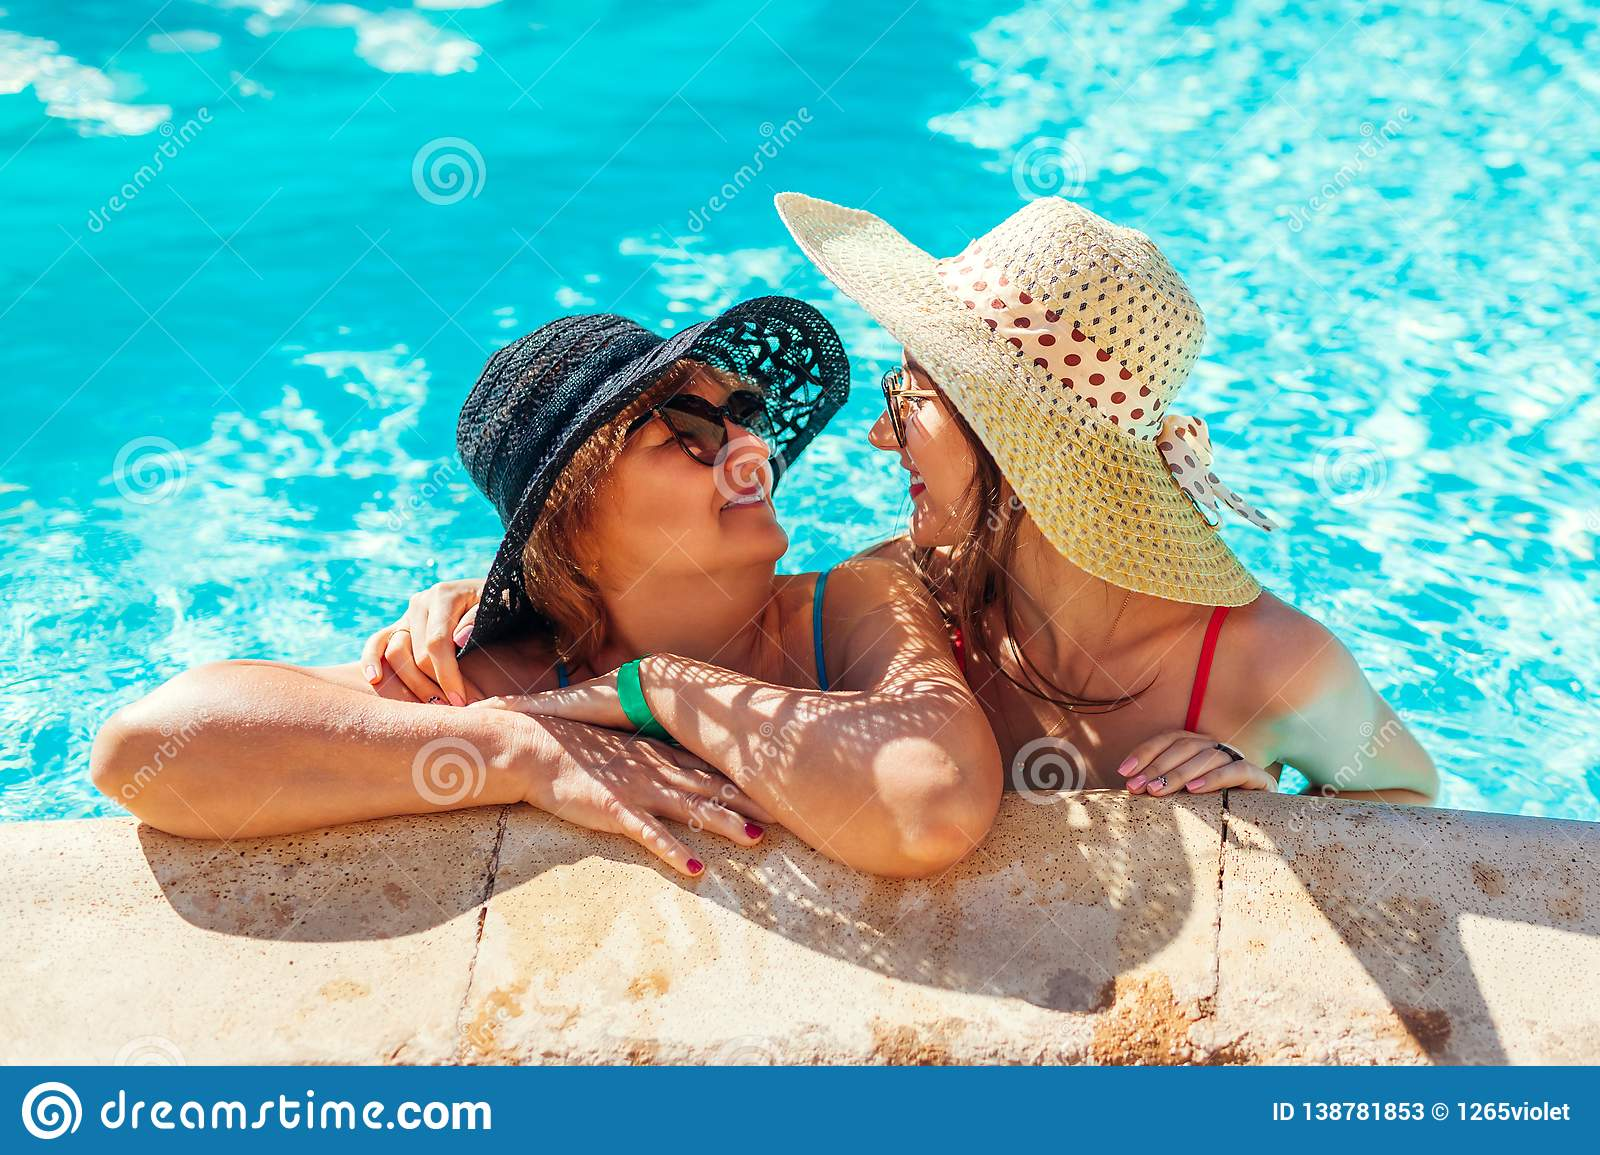 Senior woman relaxing with her adult daughter in hotel swimming pool. People enjoying vacation. Mother`s day